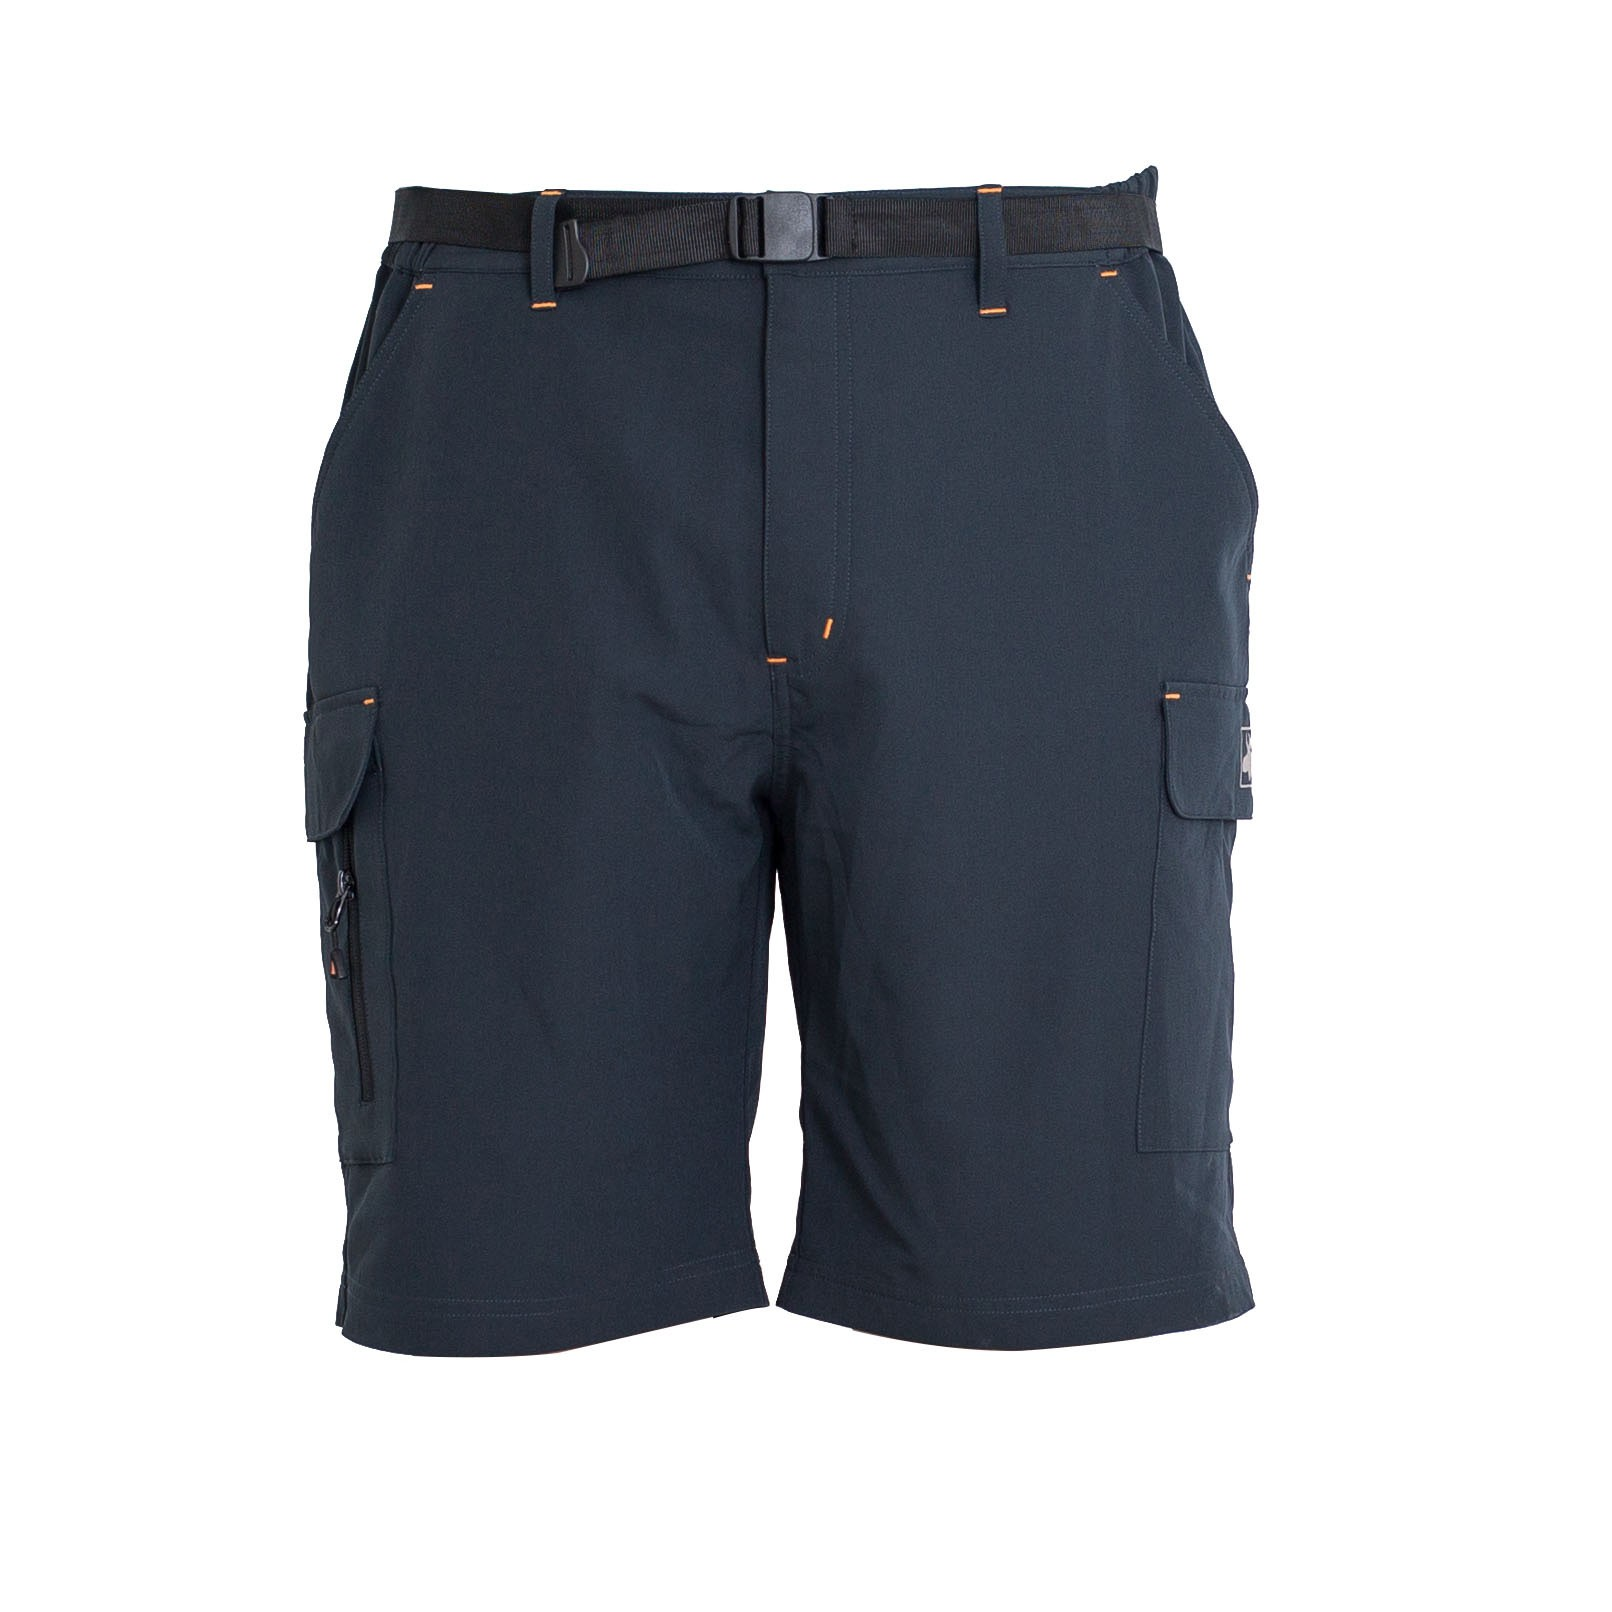 DEPROC Wanderhose KENTVILLE Full Stretch Short Herren black